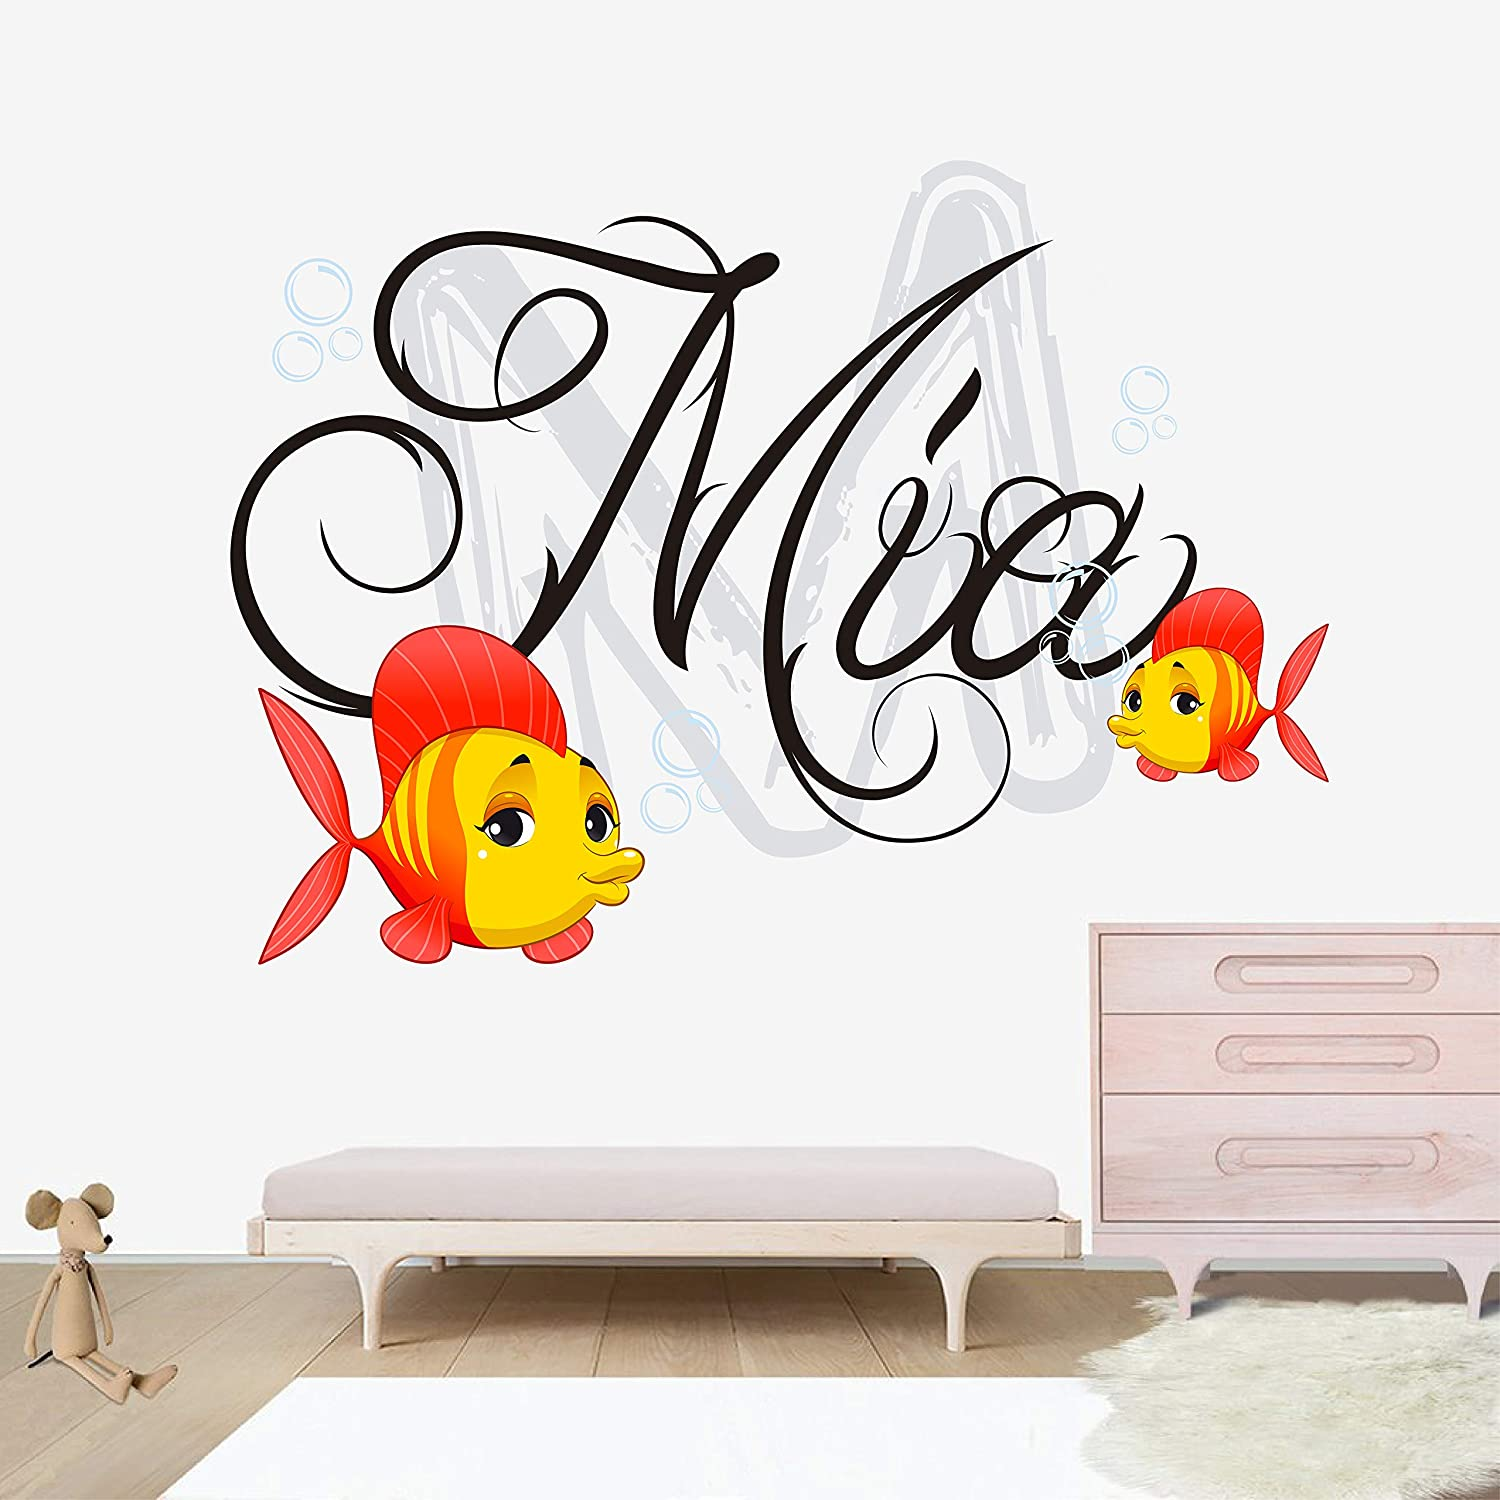 Personalized Name Wall Decal - Bubble Fish Wall Decal Vinyl Sticker Nursery for Home Bedroom Children